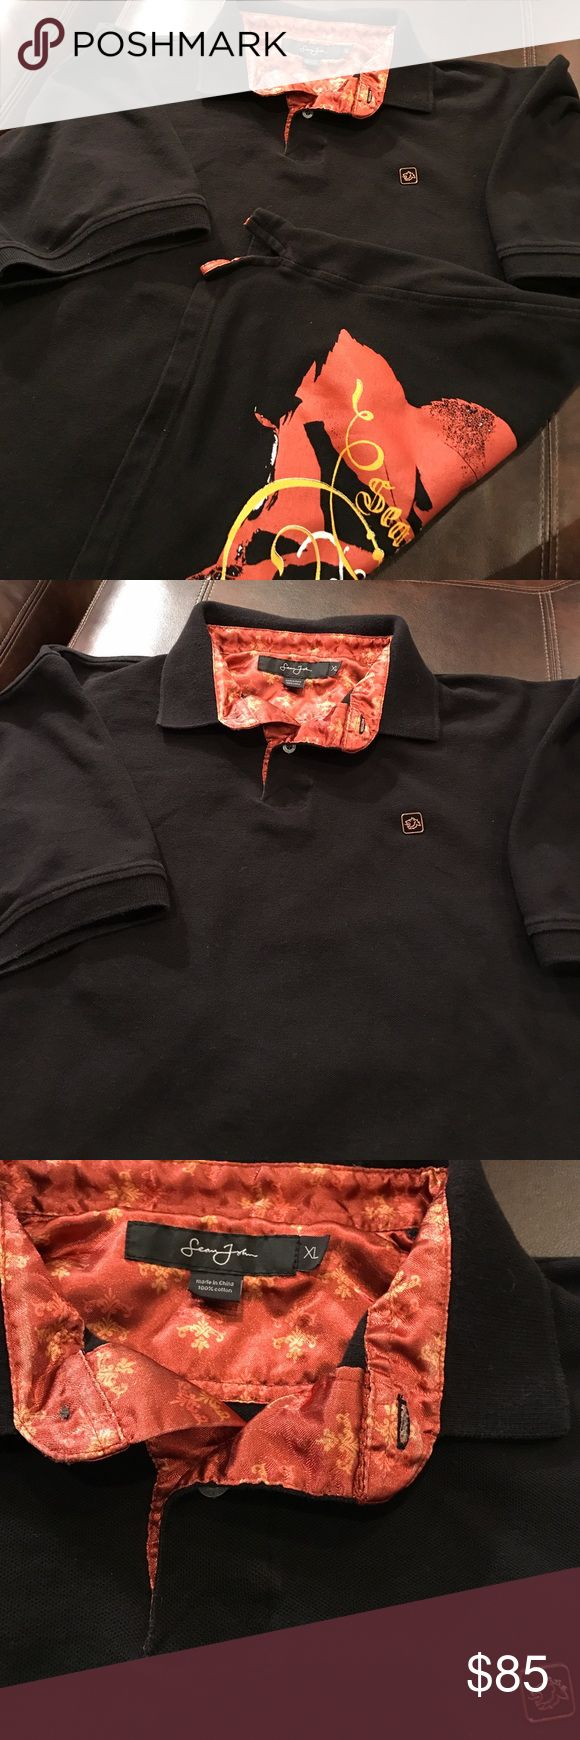 🎉SALE🎉 Sean John Polo Shirt Excellent condition.  Size XL.  Short sleeves.  Black with burnt red, white and gold accent design.  Design mostly on back in a rose and leaf screen print.  Logo detailed as well.  100% cotton.  Comfy and cozy. Heavier material.  No flaws!!! Awesome shirt. Sean John Shirts Polos